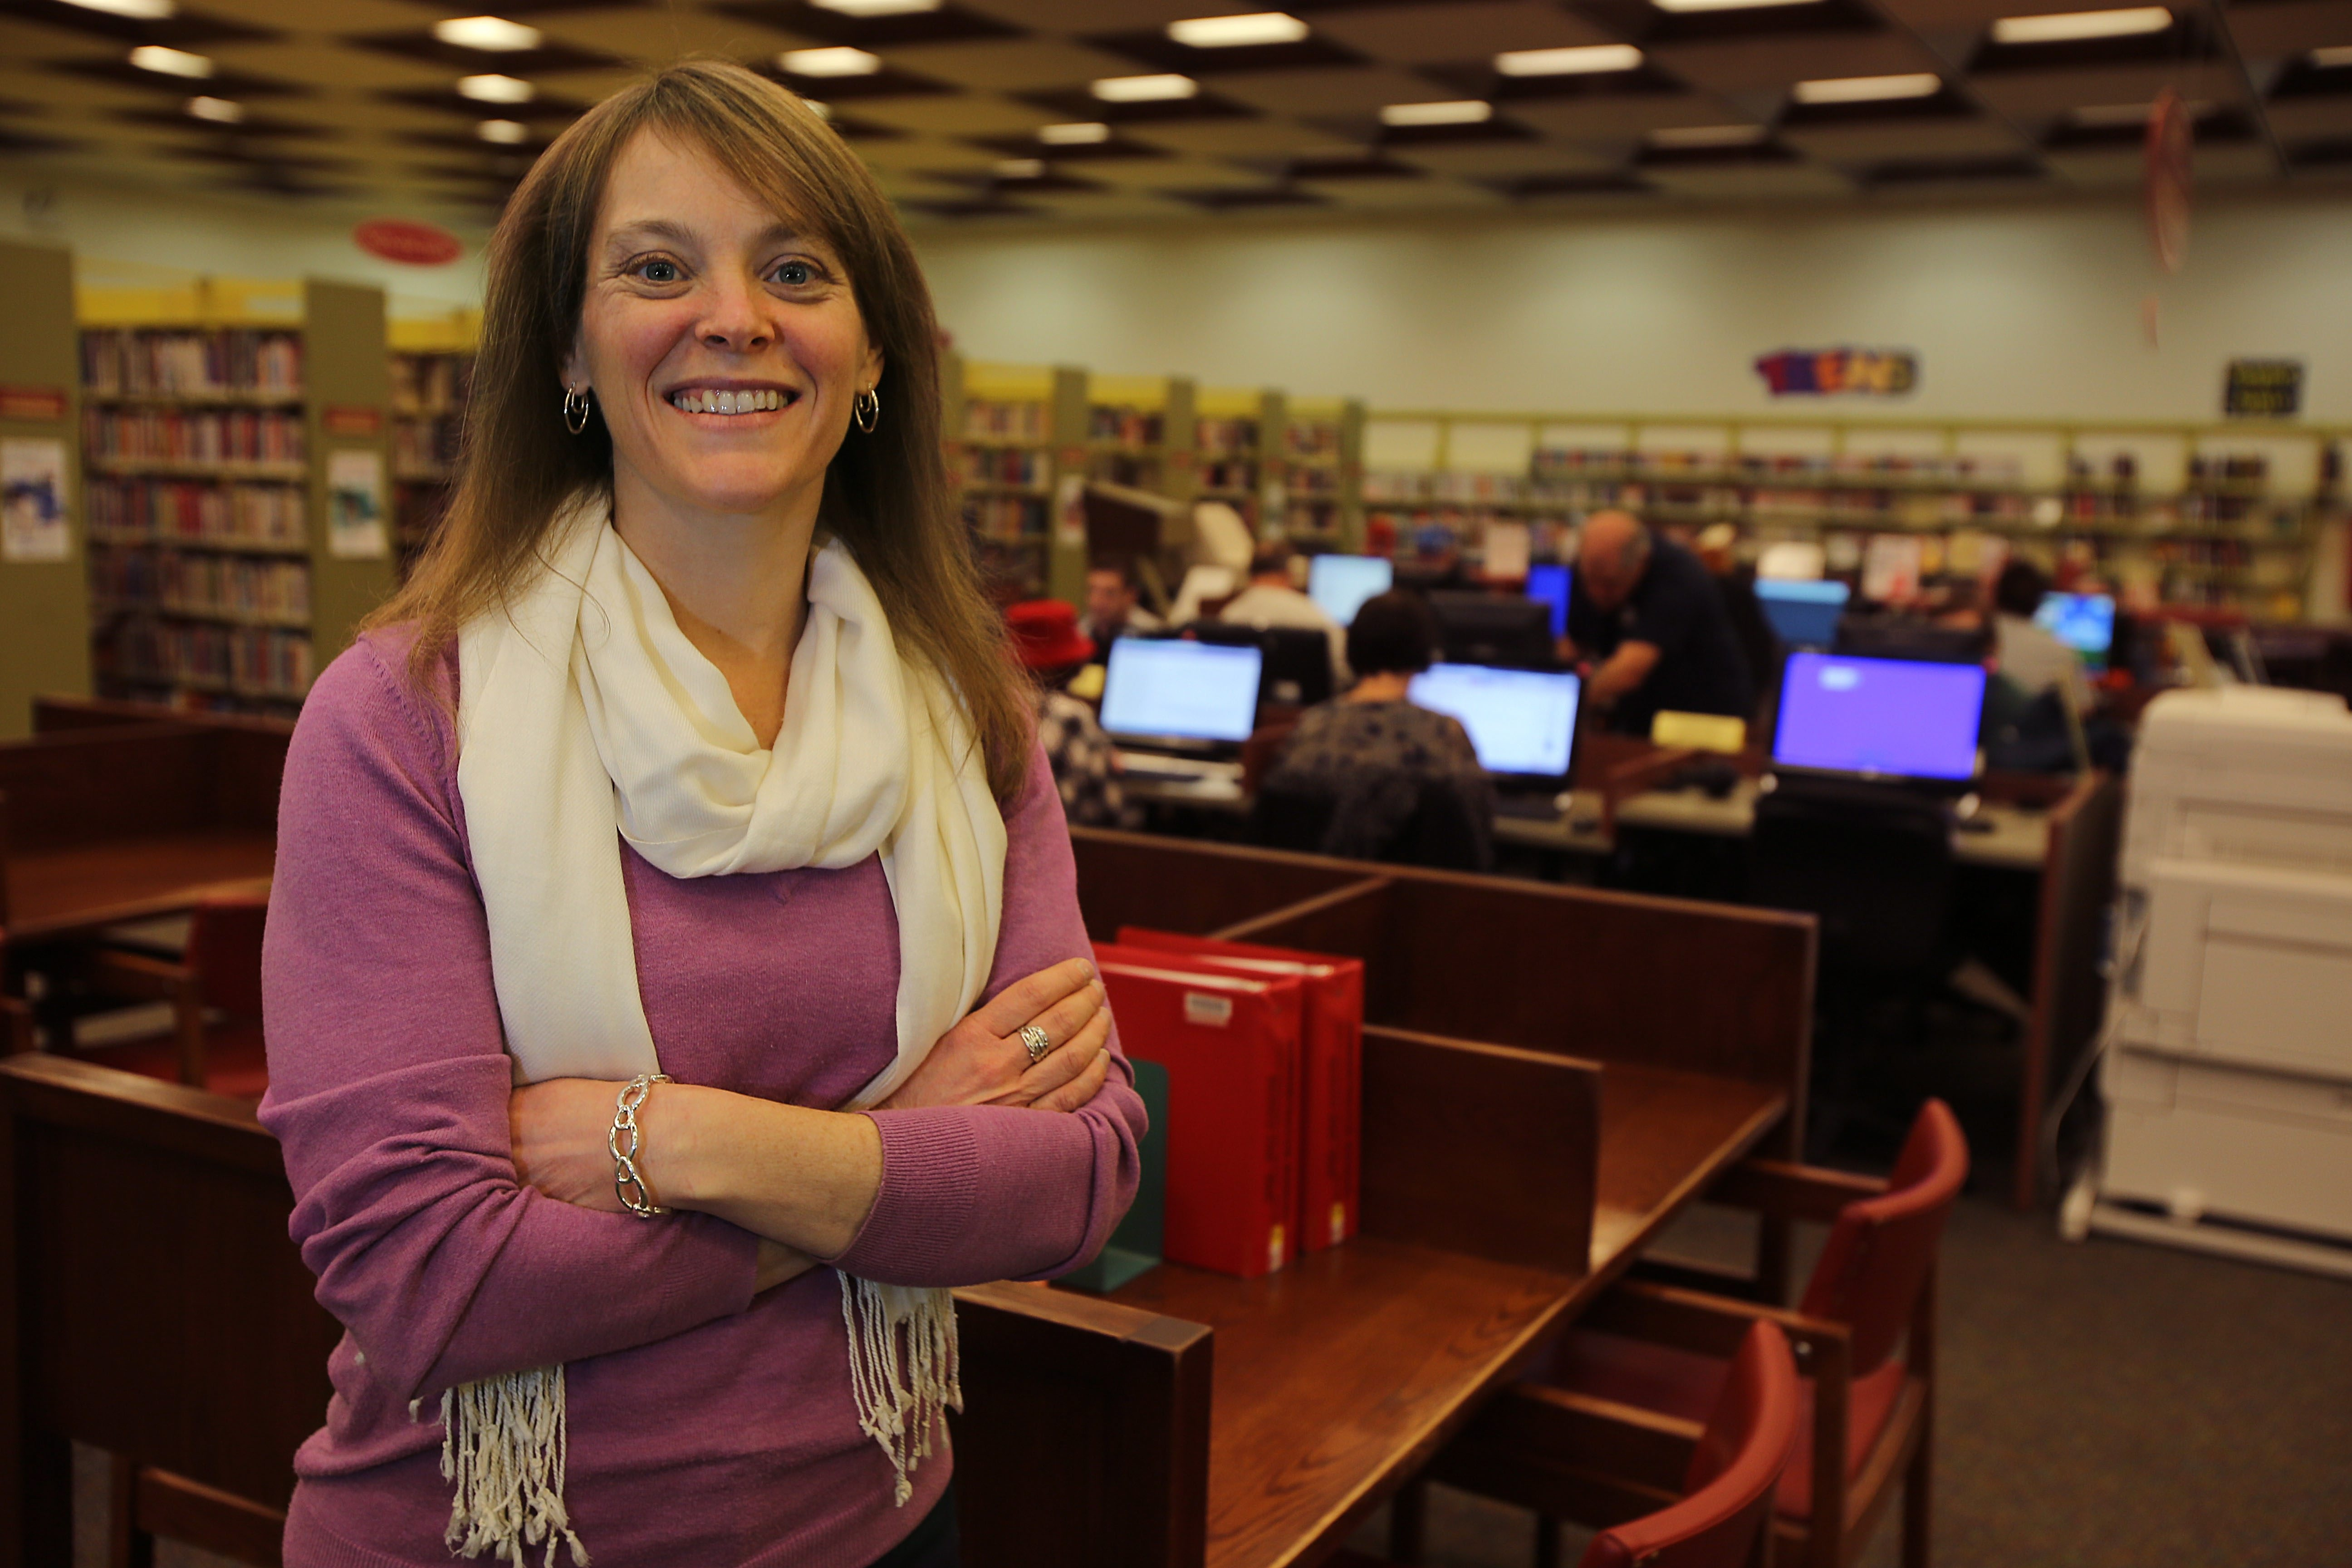 Britt White took over as librarian of North Tonawanda Library in mid-August. Friends of the North Tonawanda Library will welcome her at a reception Monday evening.